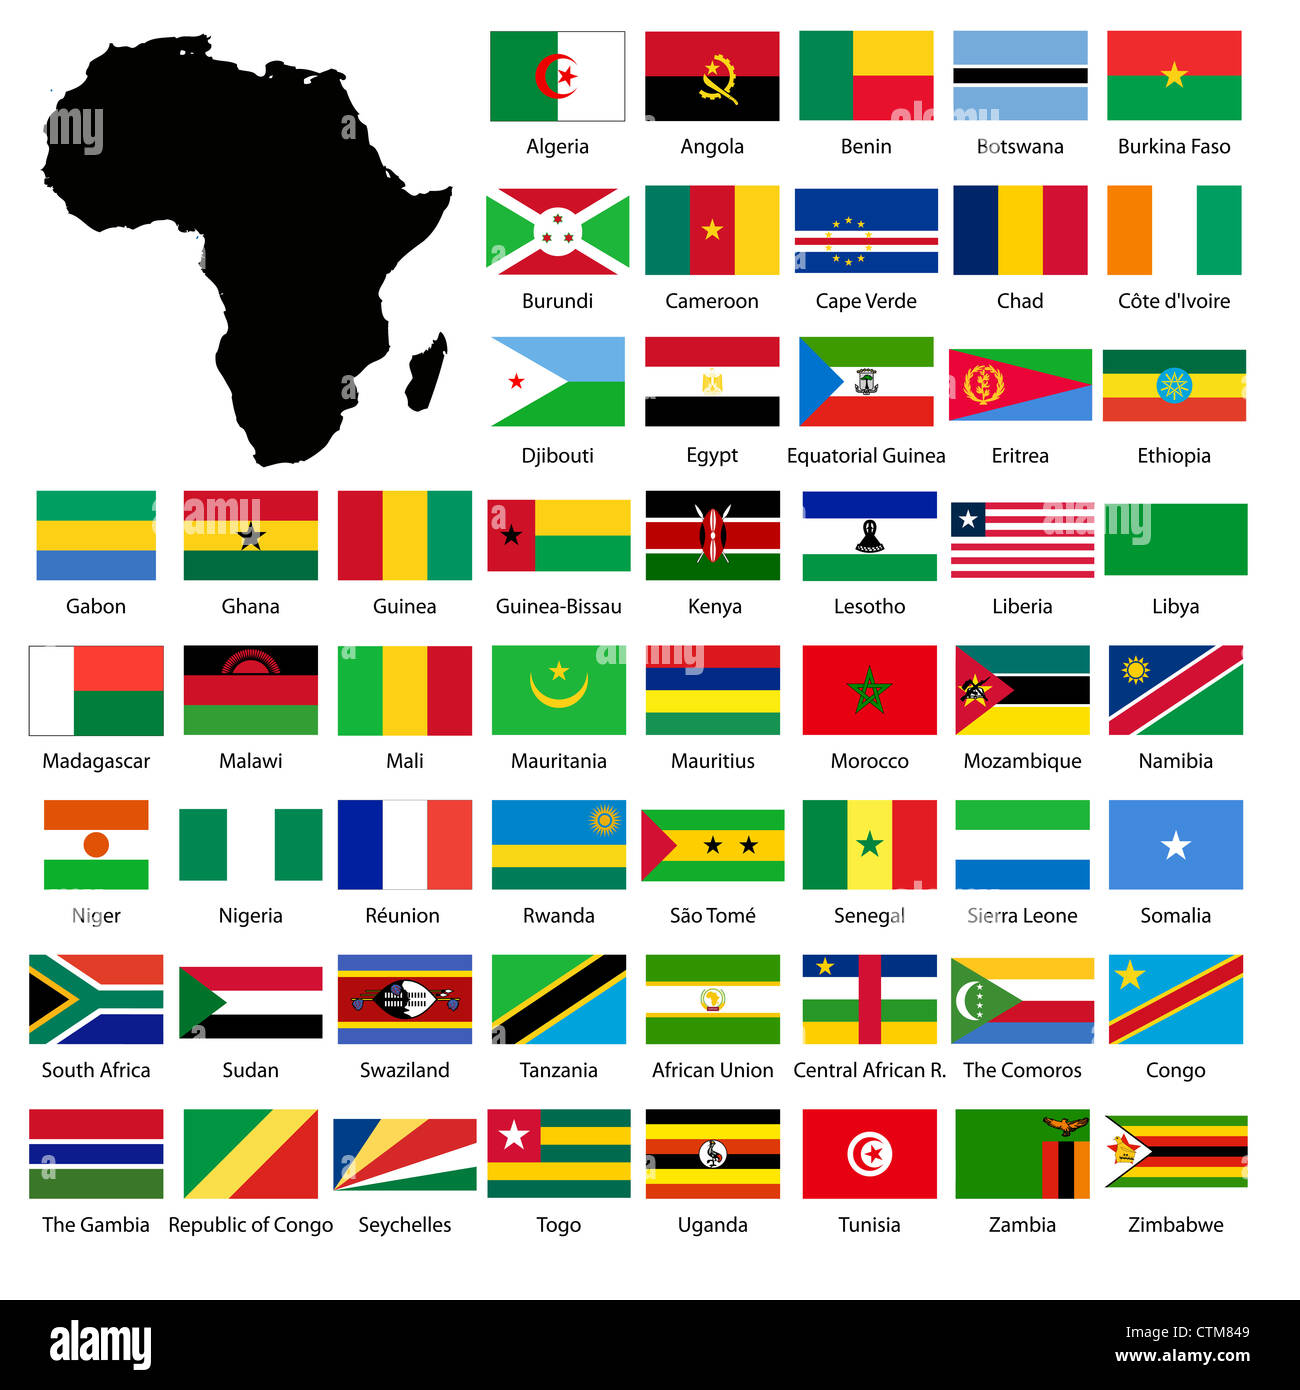 Map Of Africa With Flags.African Flags And Continent Map Stock Photo 49617913 Alamy